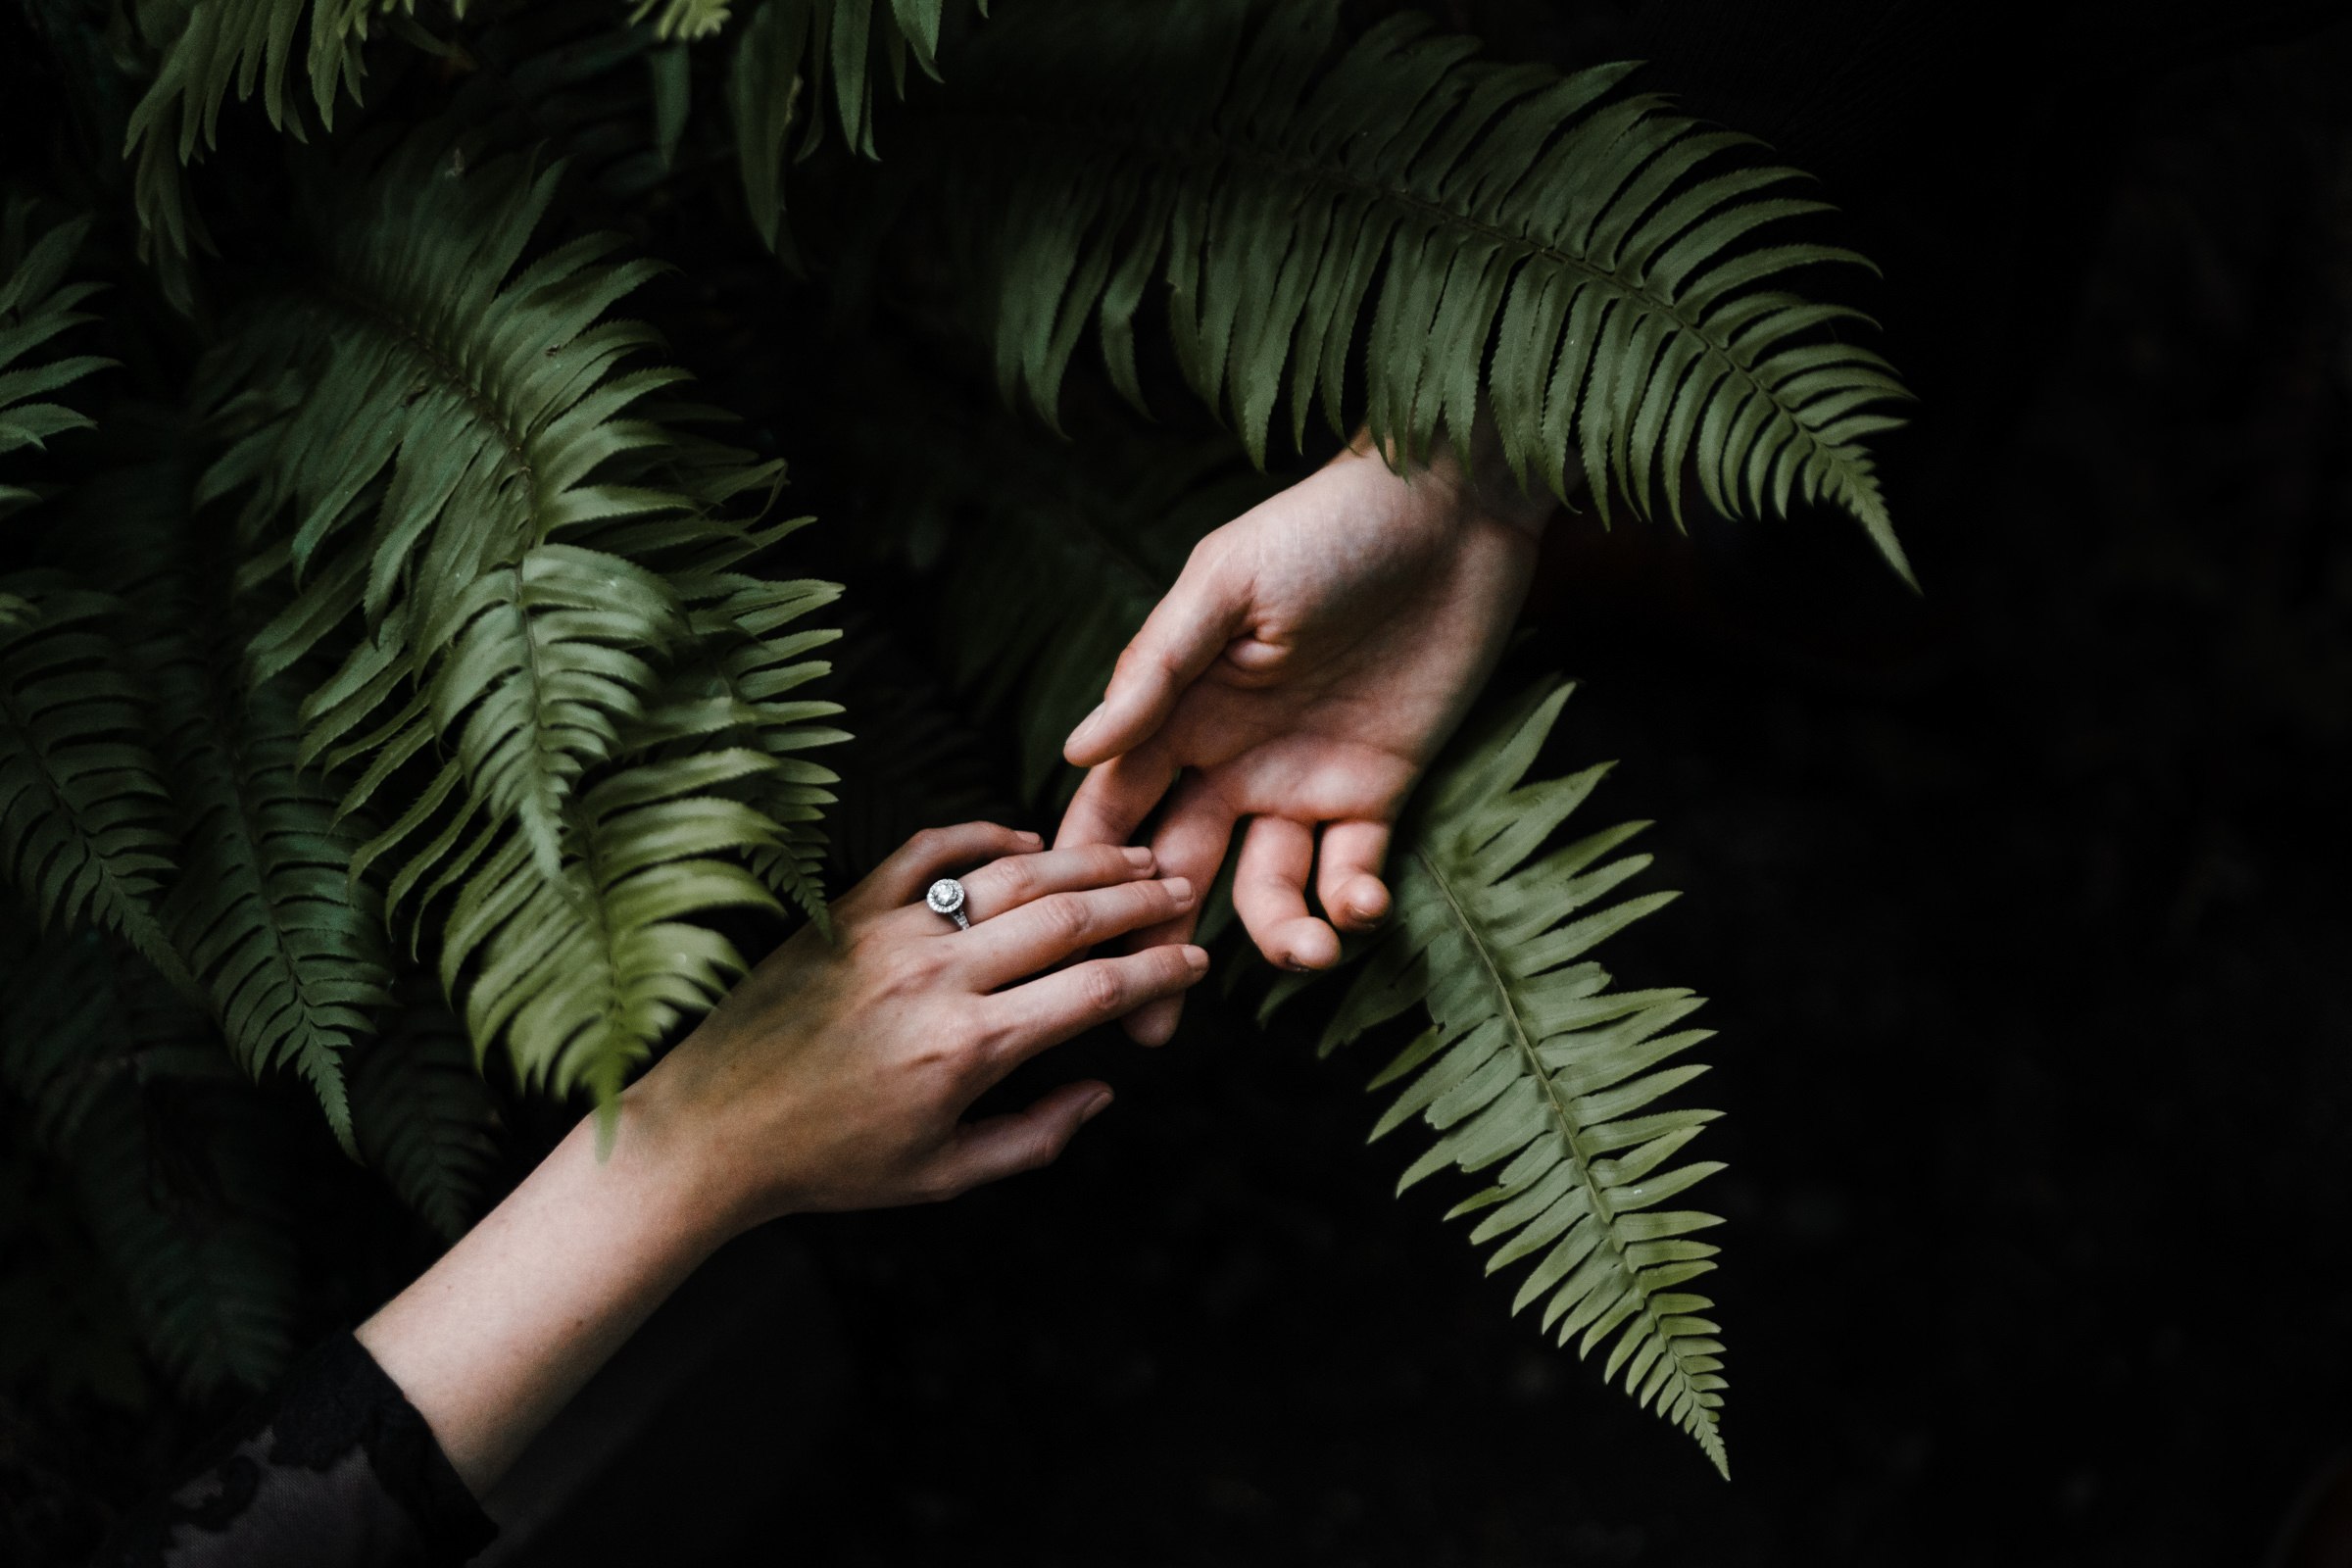 hands touching over fern fronds - photo by Sasha Reiko Photography